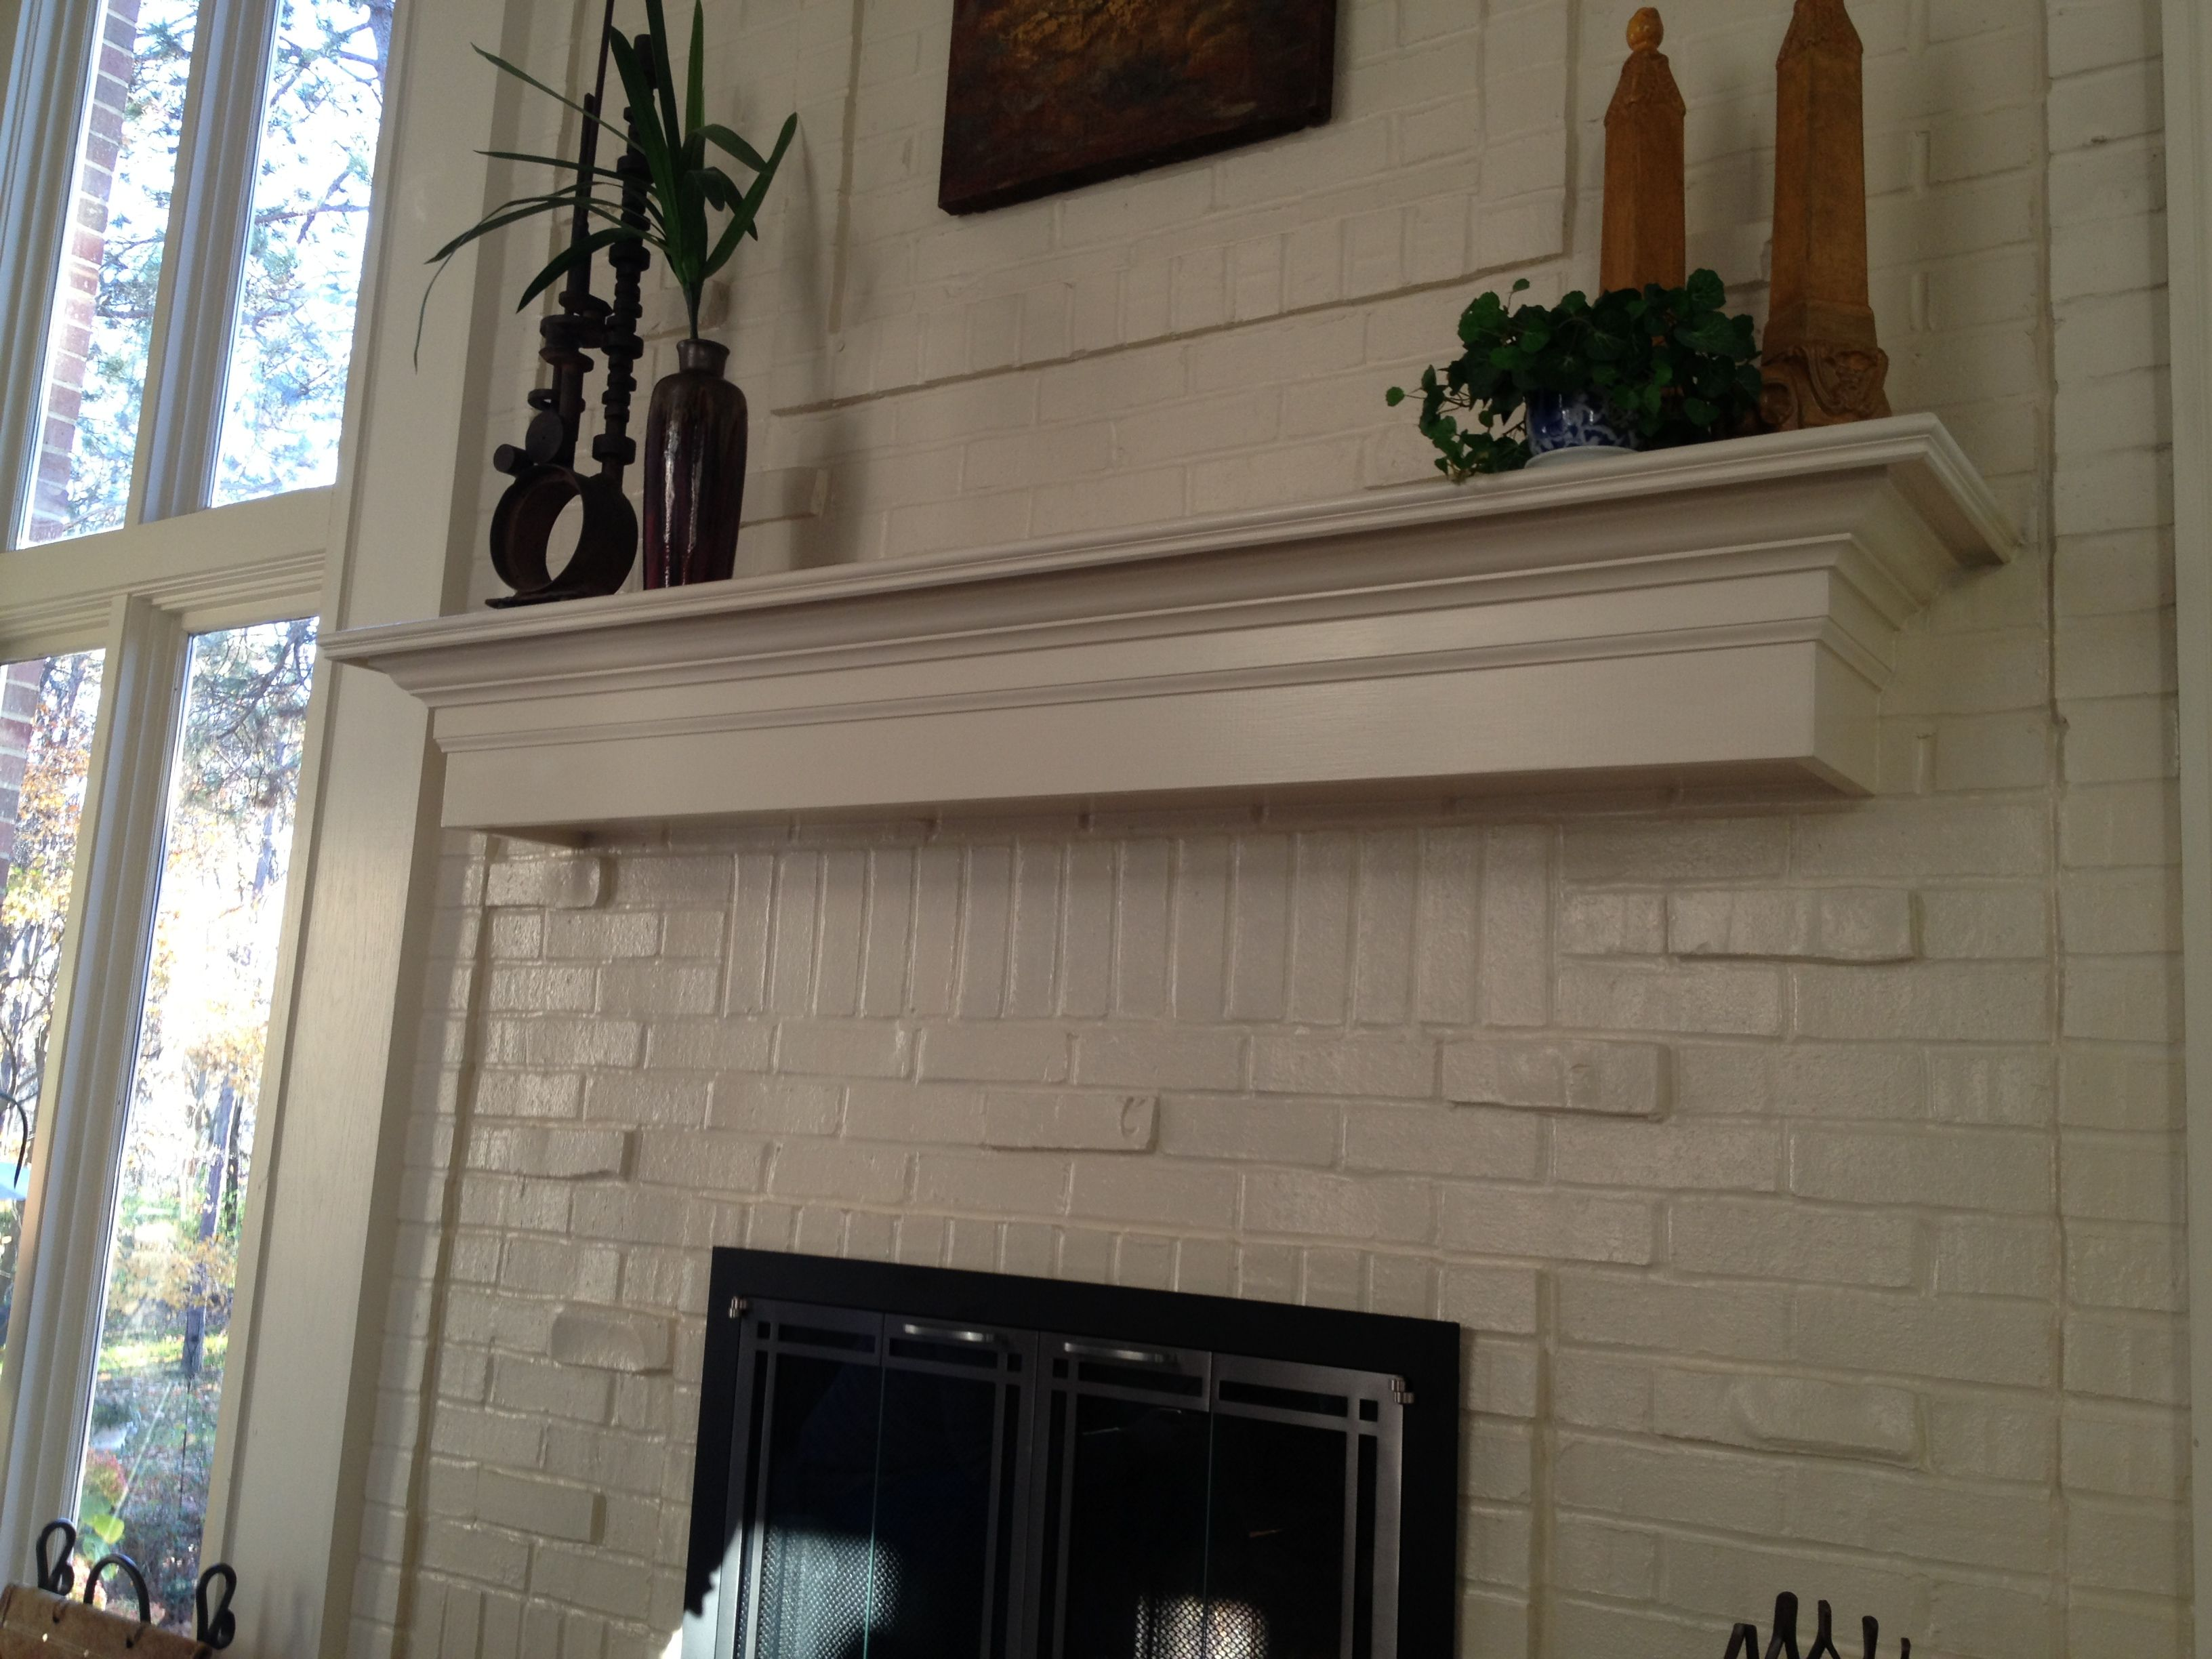 Floating Fireplace Mantel Ideas Mantel Ideas For Brick Fireplace White Painted Brick And White